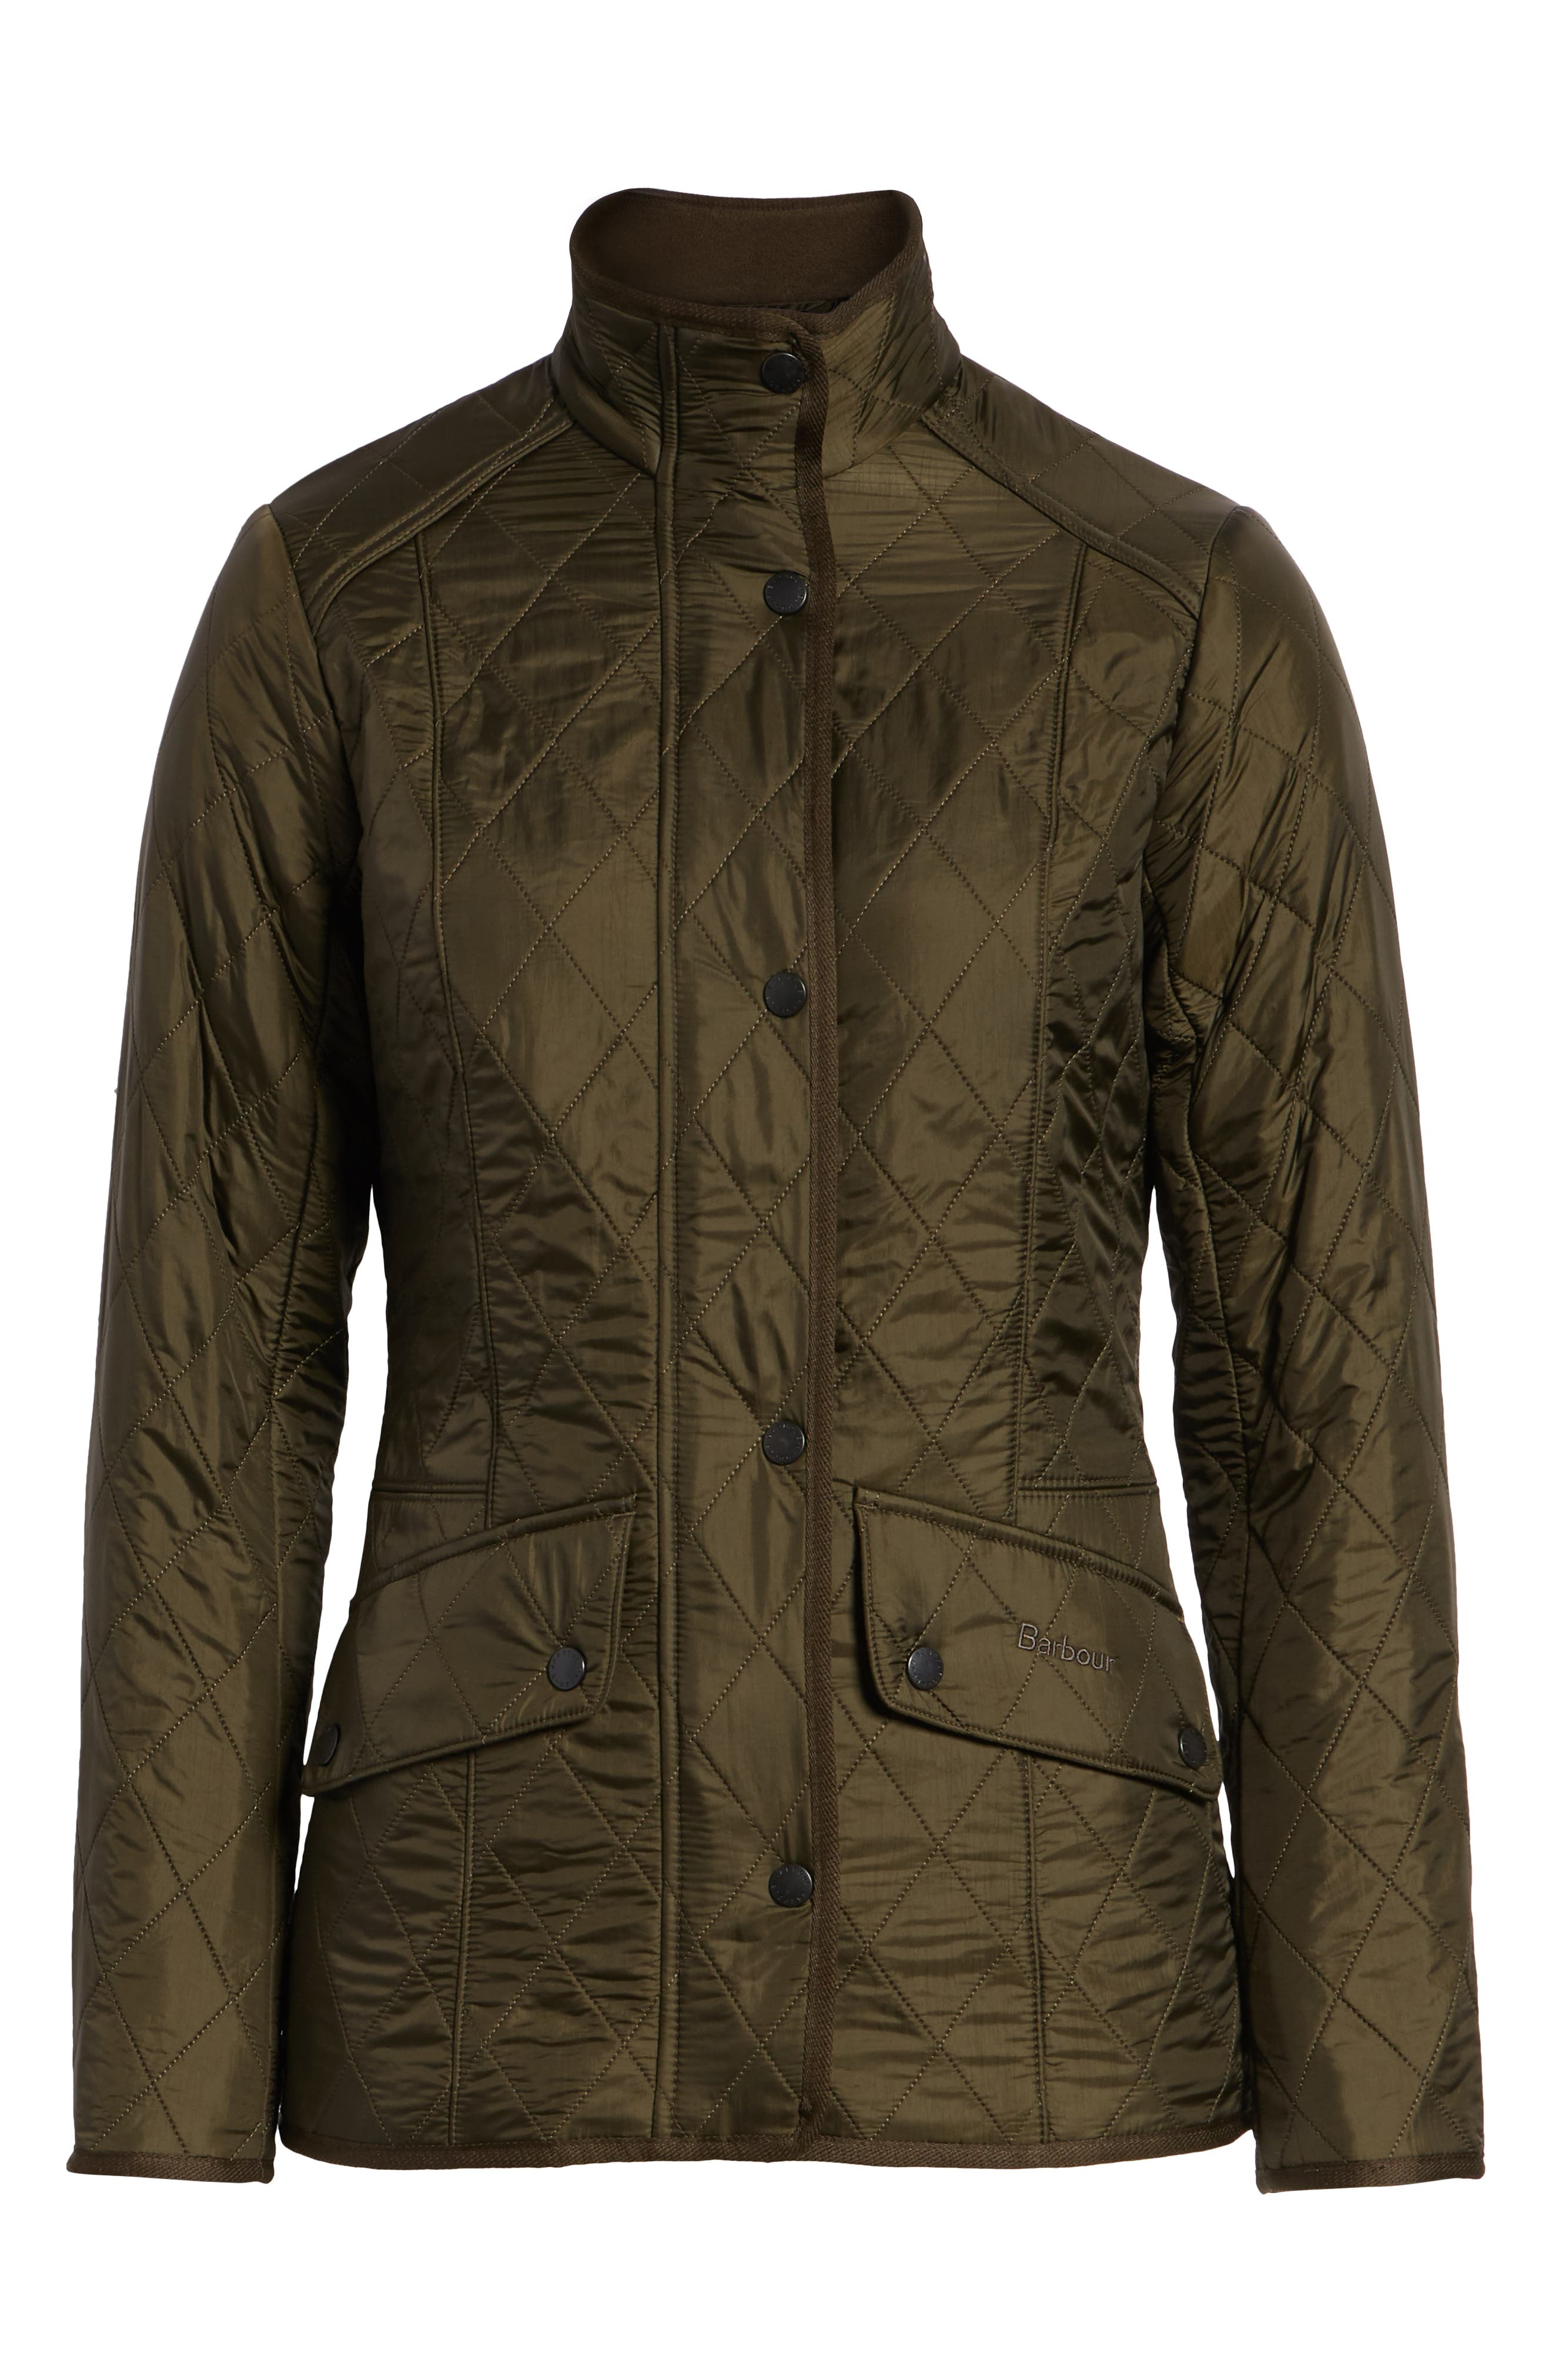 BARBOUR, 'Cavalry' Quilted Jacket, Alternate thumbnail 5, color, DARK OLIVE/ OLIVE